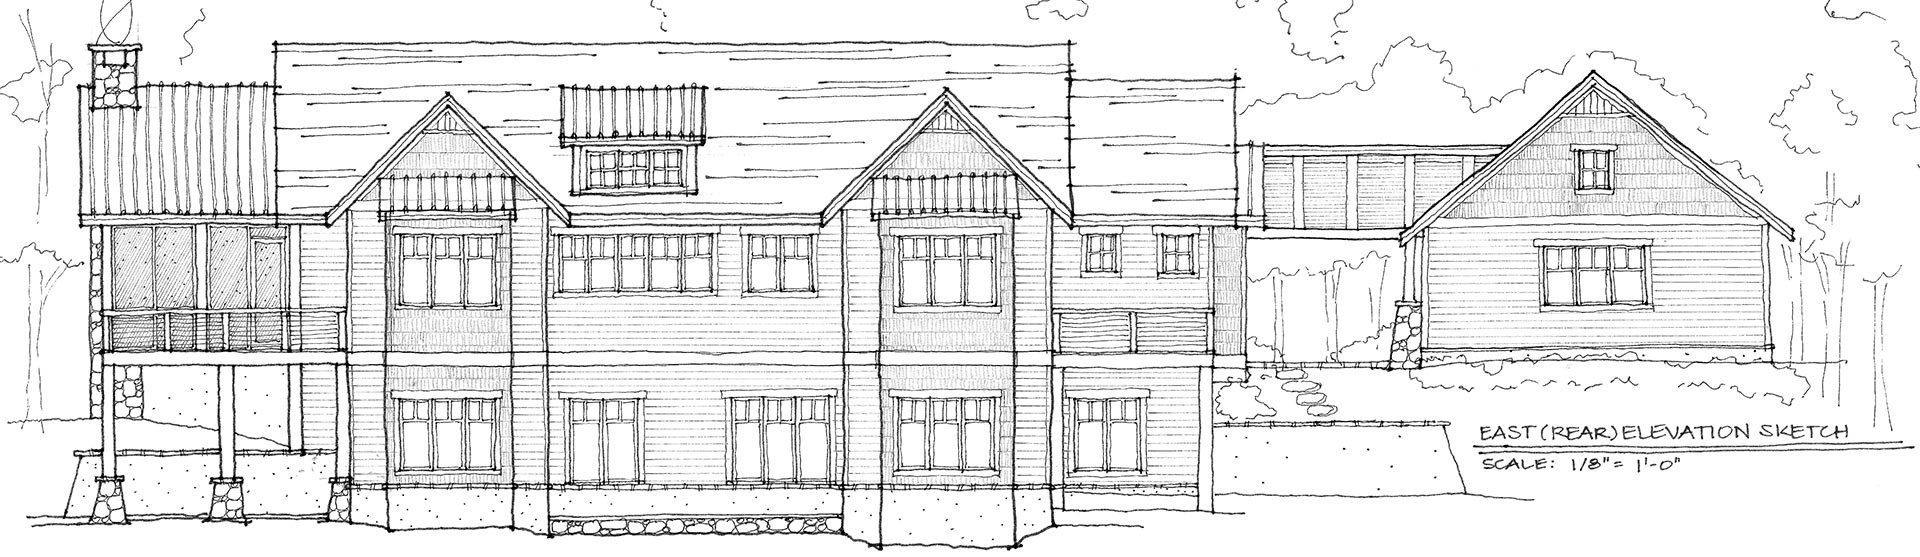 Our Work Elevation Sketch